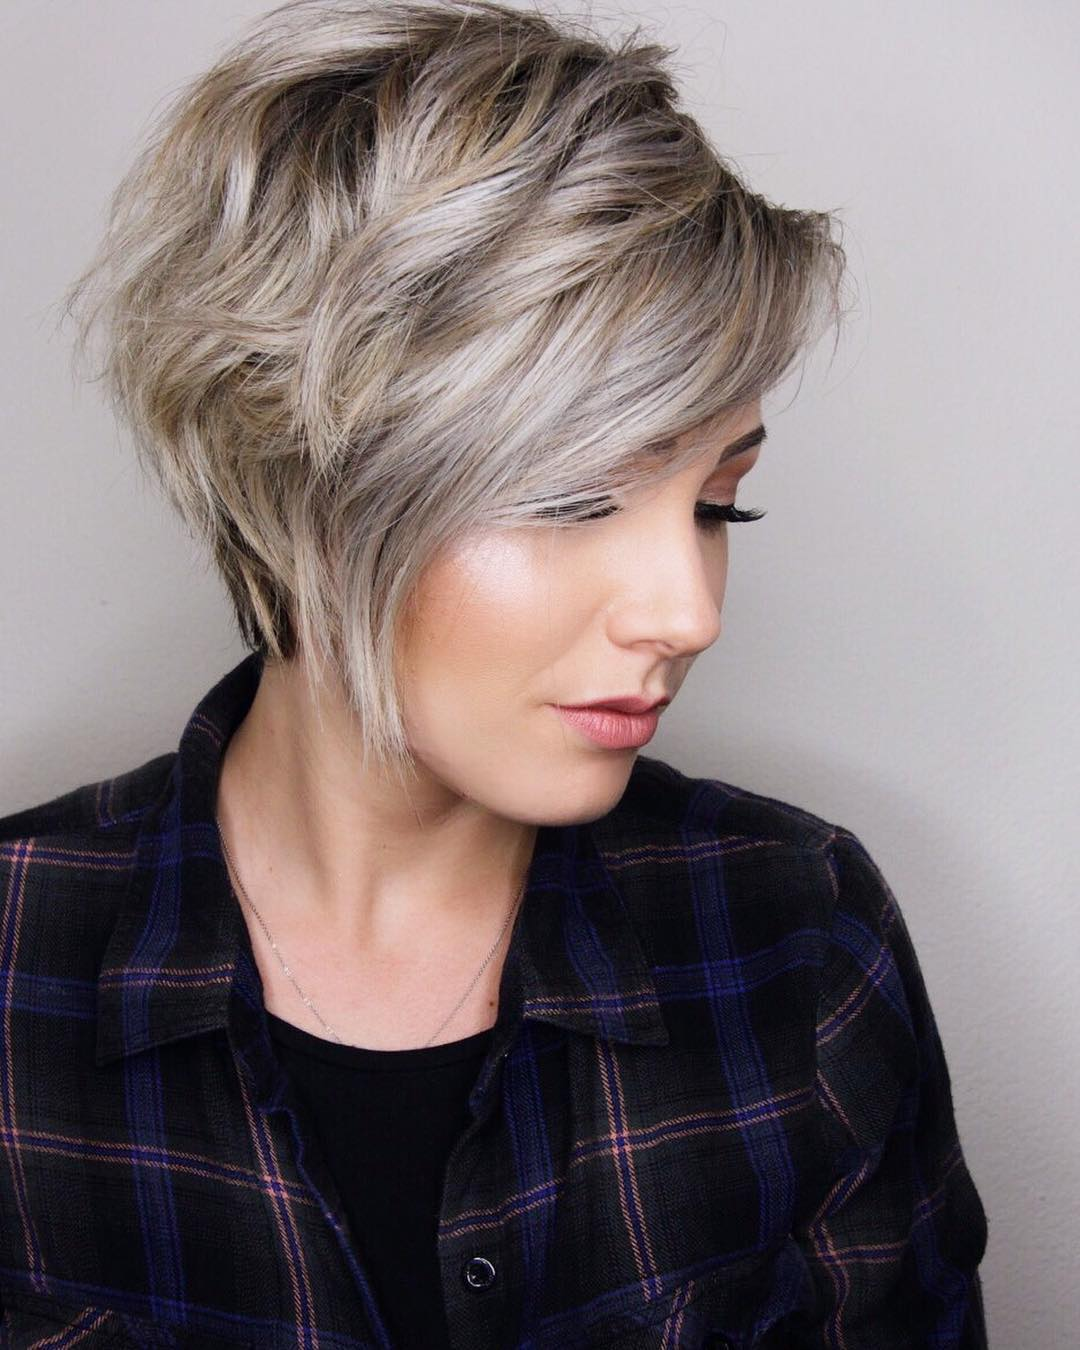 10 Trendy Layered Short Haircut Ideas For 2017 2018